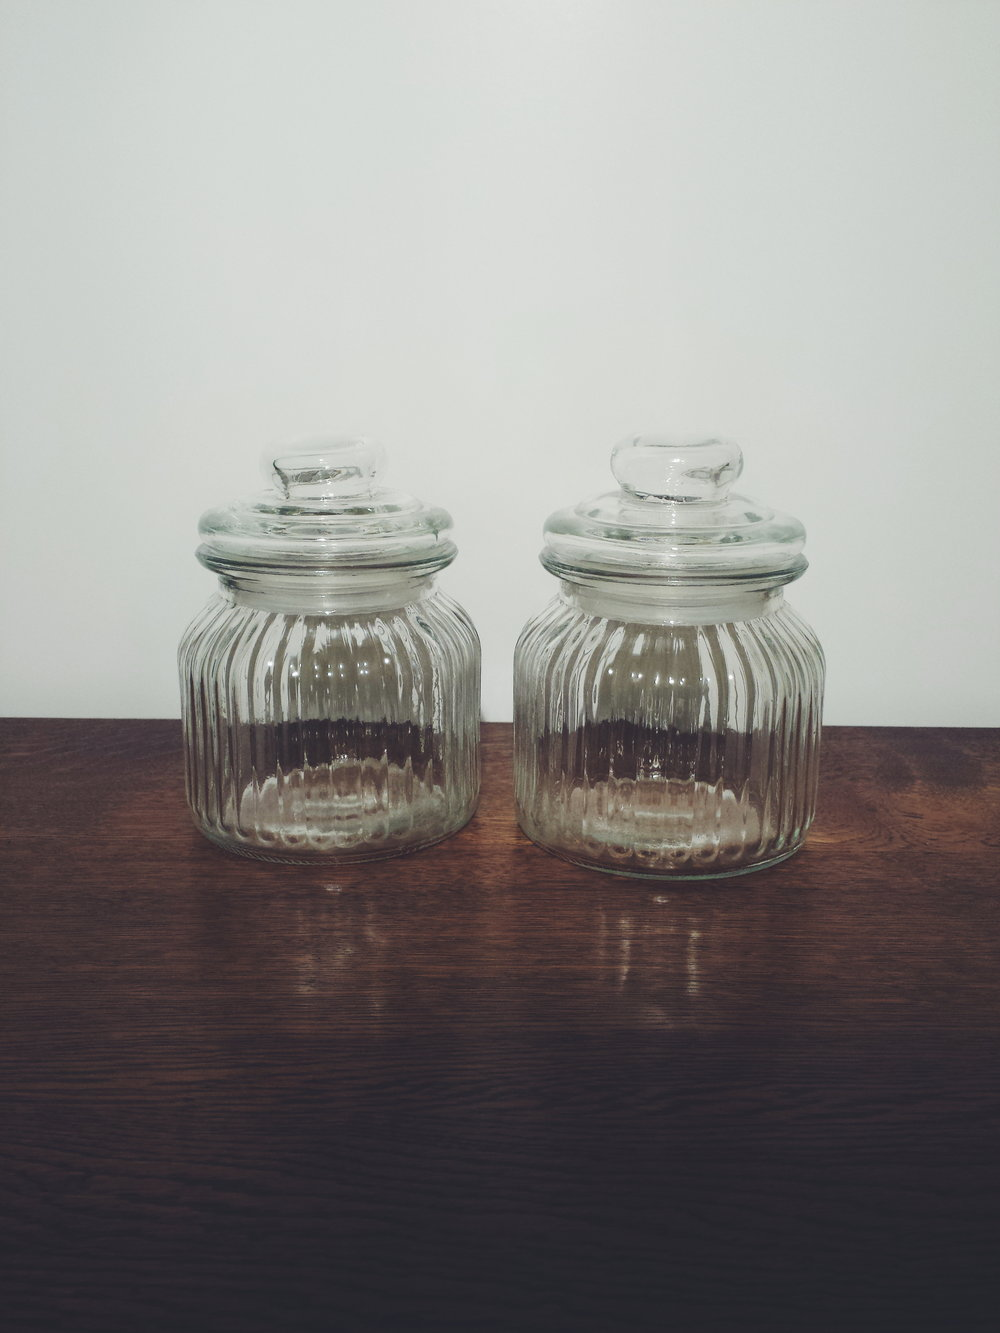 Small sweet jars £3 each to hire